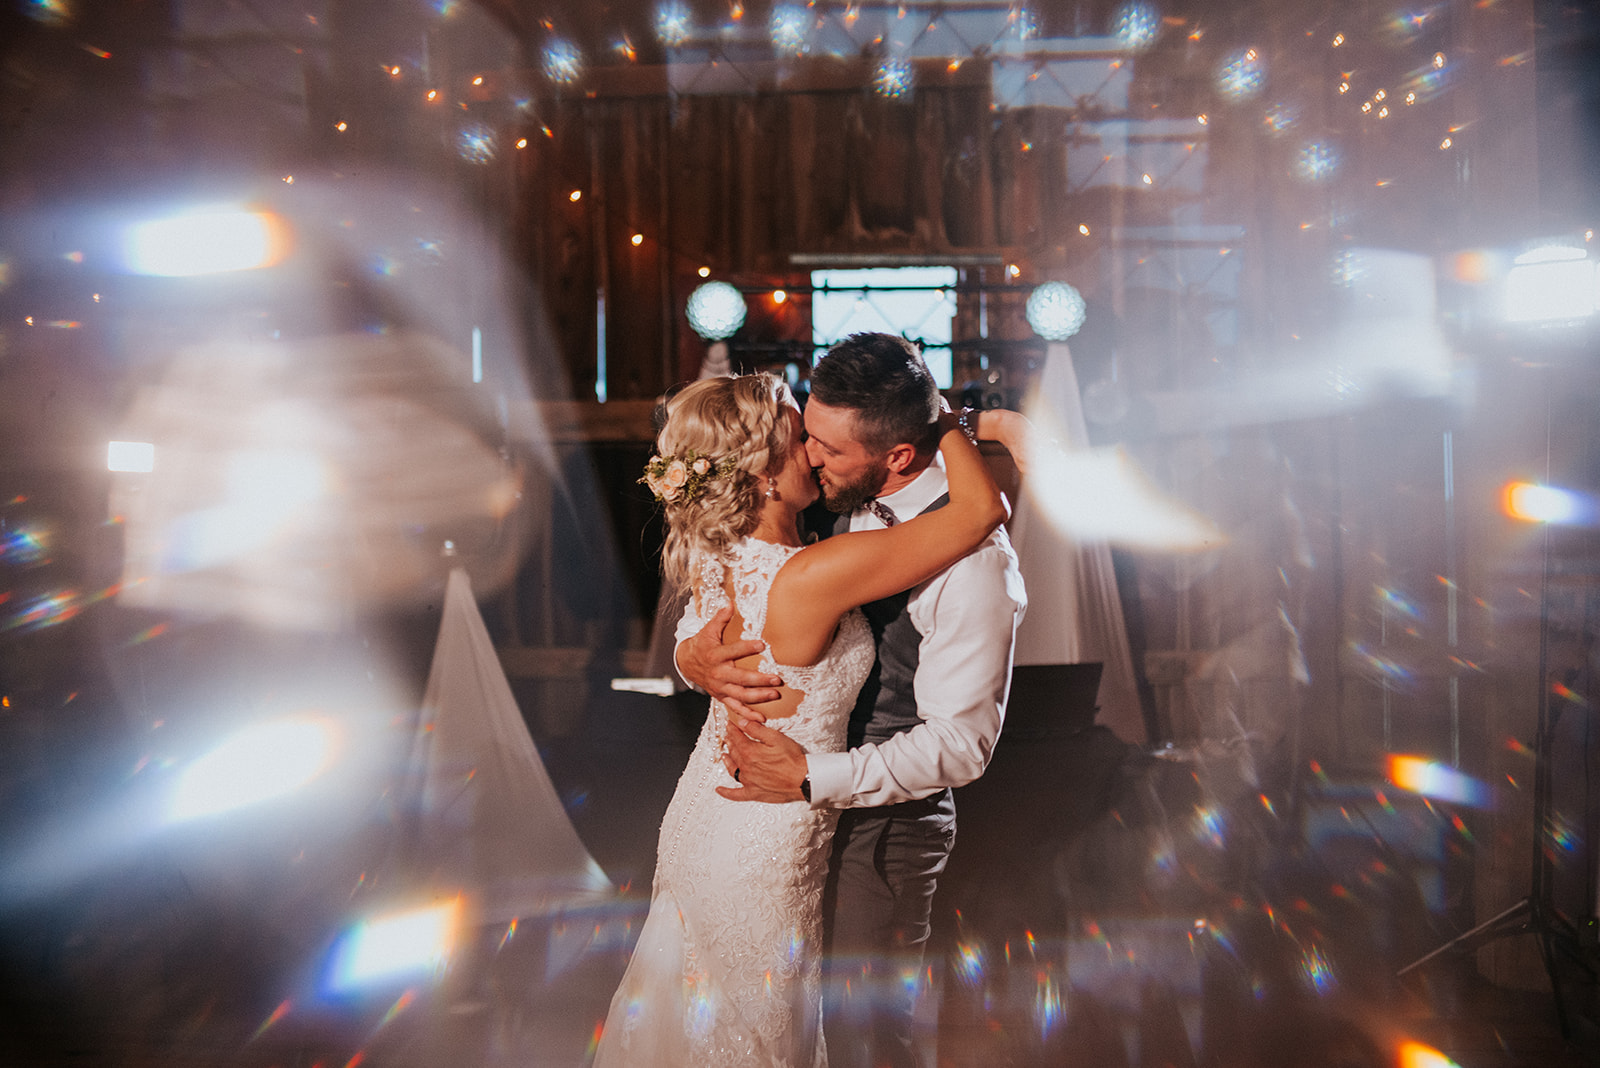 overthevineswisconsinwedding_1283.jpg